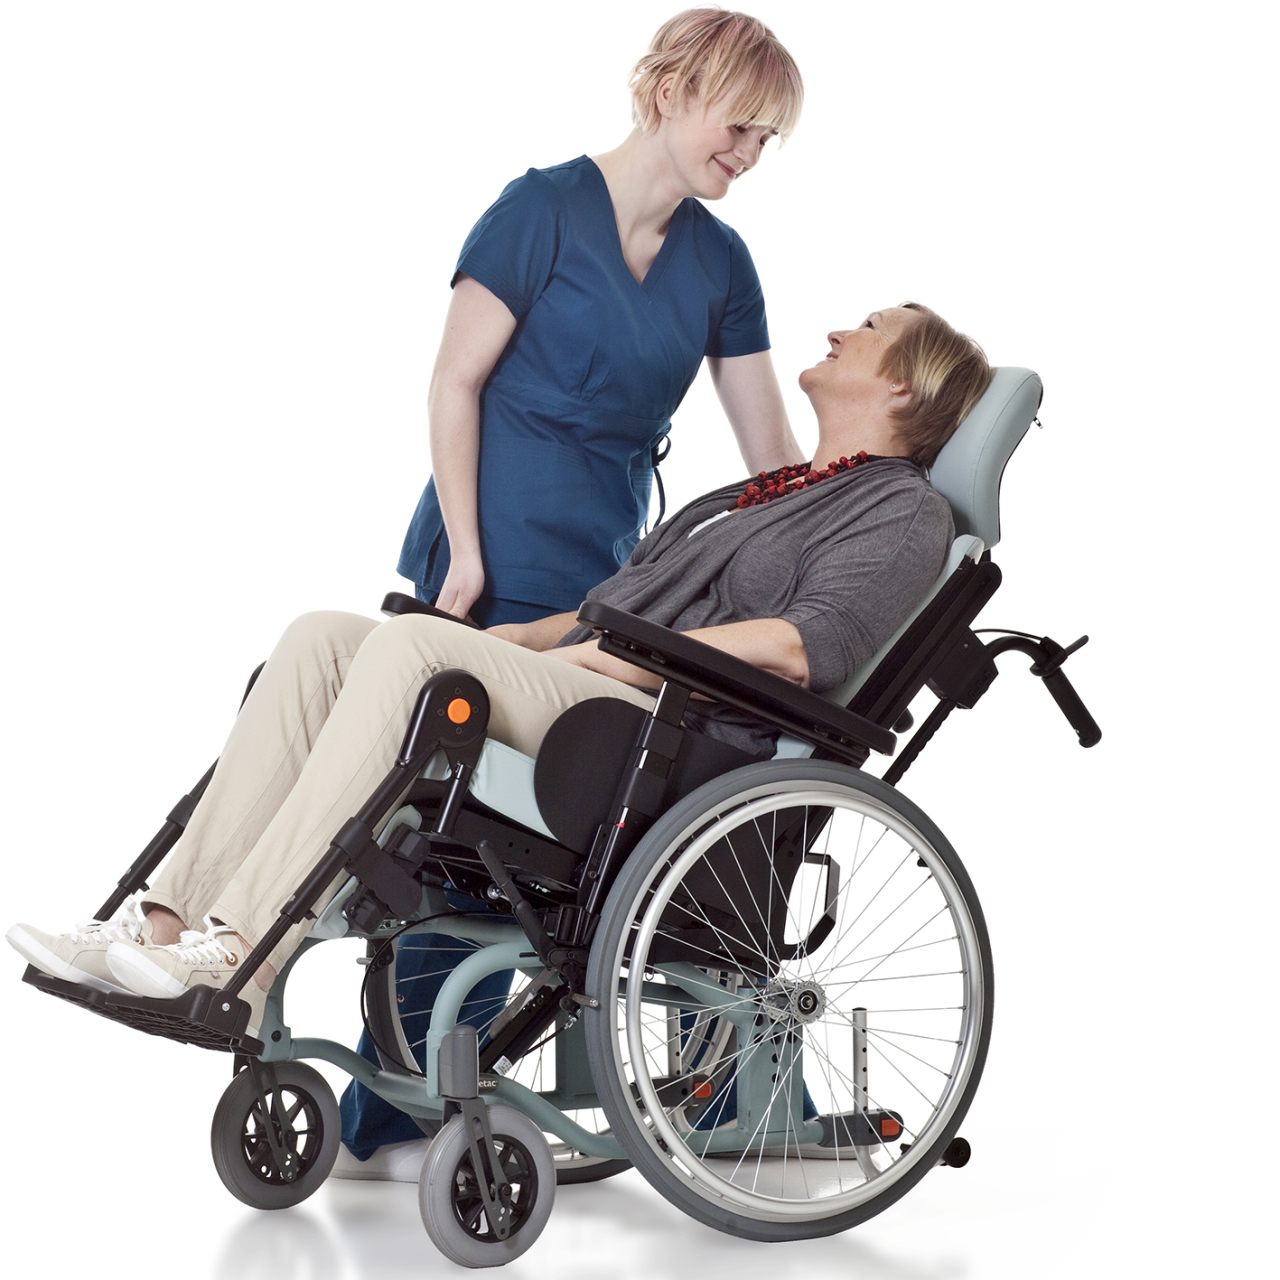 The tilt mechanism can be operated standing beside the chair so that the carer and Prio user have eye contact.